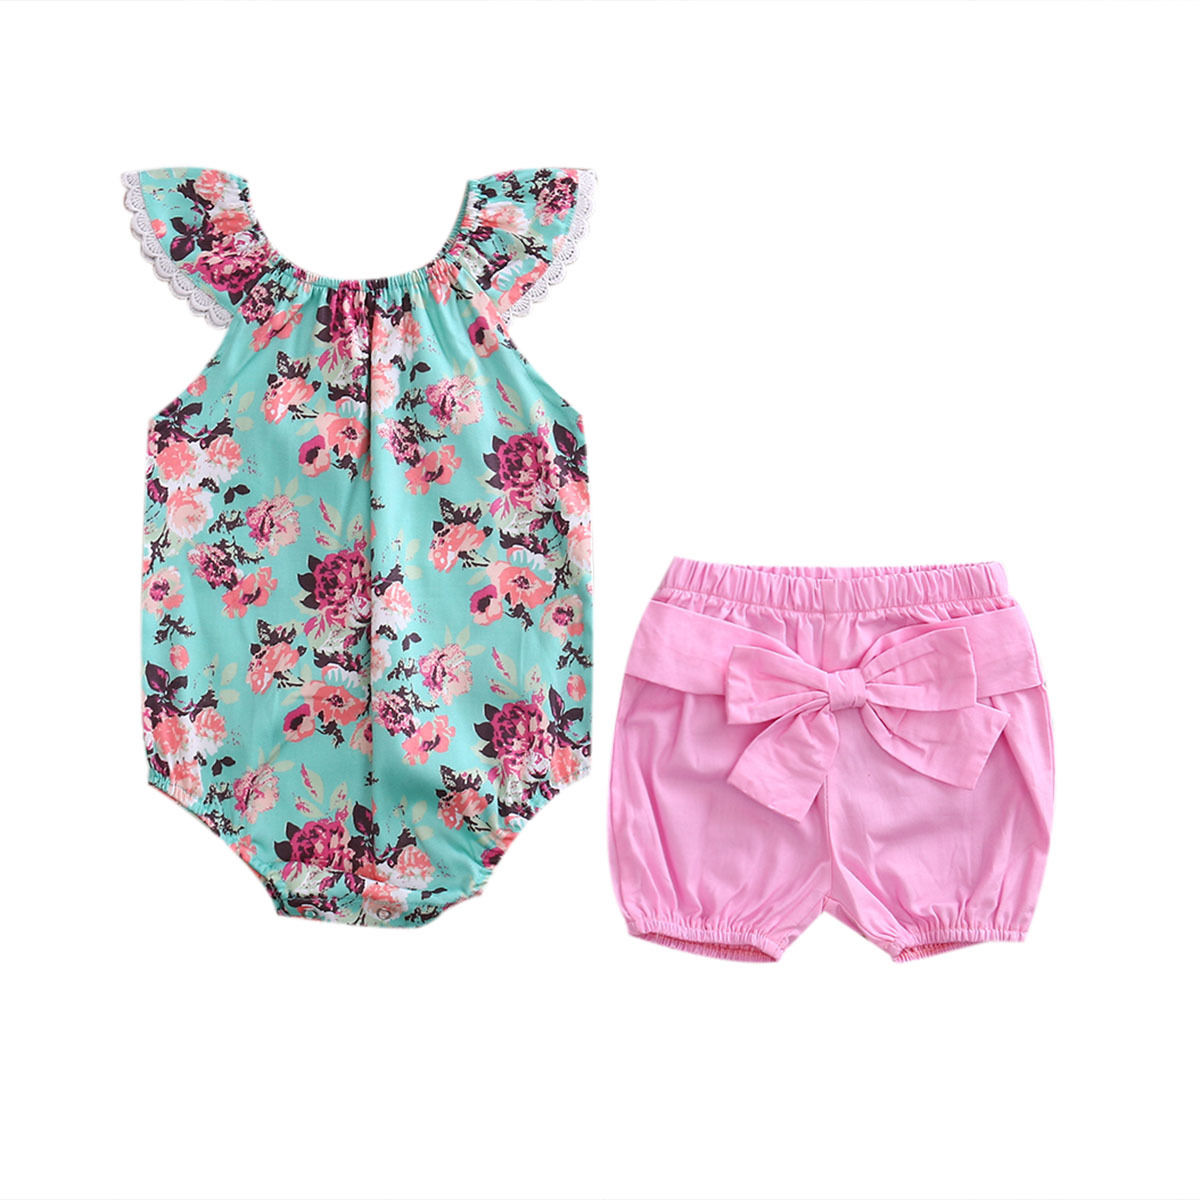 Baby Girl Tops Romper Sleeveless Cute Shorts Bow Cute Summer Outfits Set Clothing 2Pcs Toddler Baby Girls Clothes Set Floral 0 24m floral baby girl clothes set 2017 summer sleeveless ruffles crop tops baby bloomers shorts 2pcs outfits children sunsuit